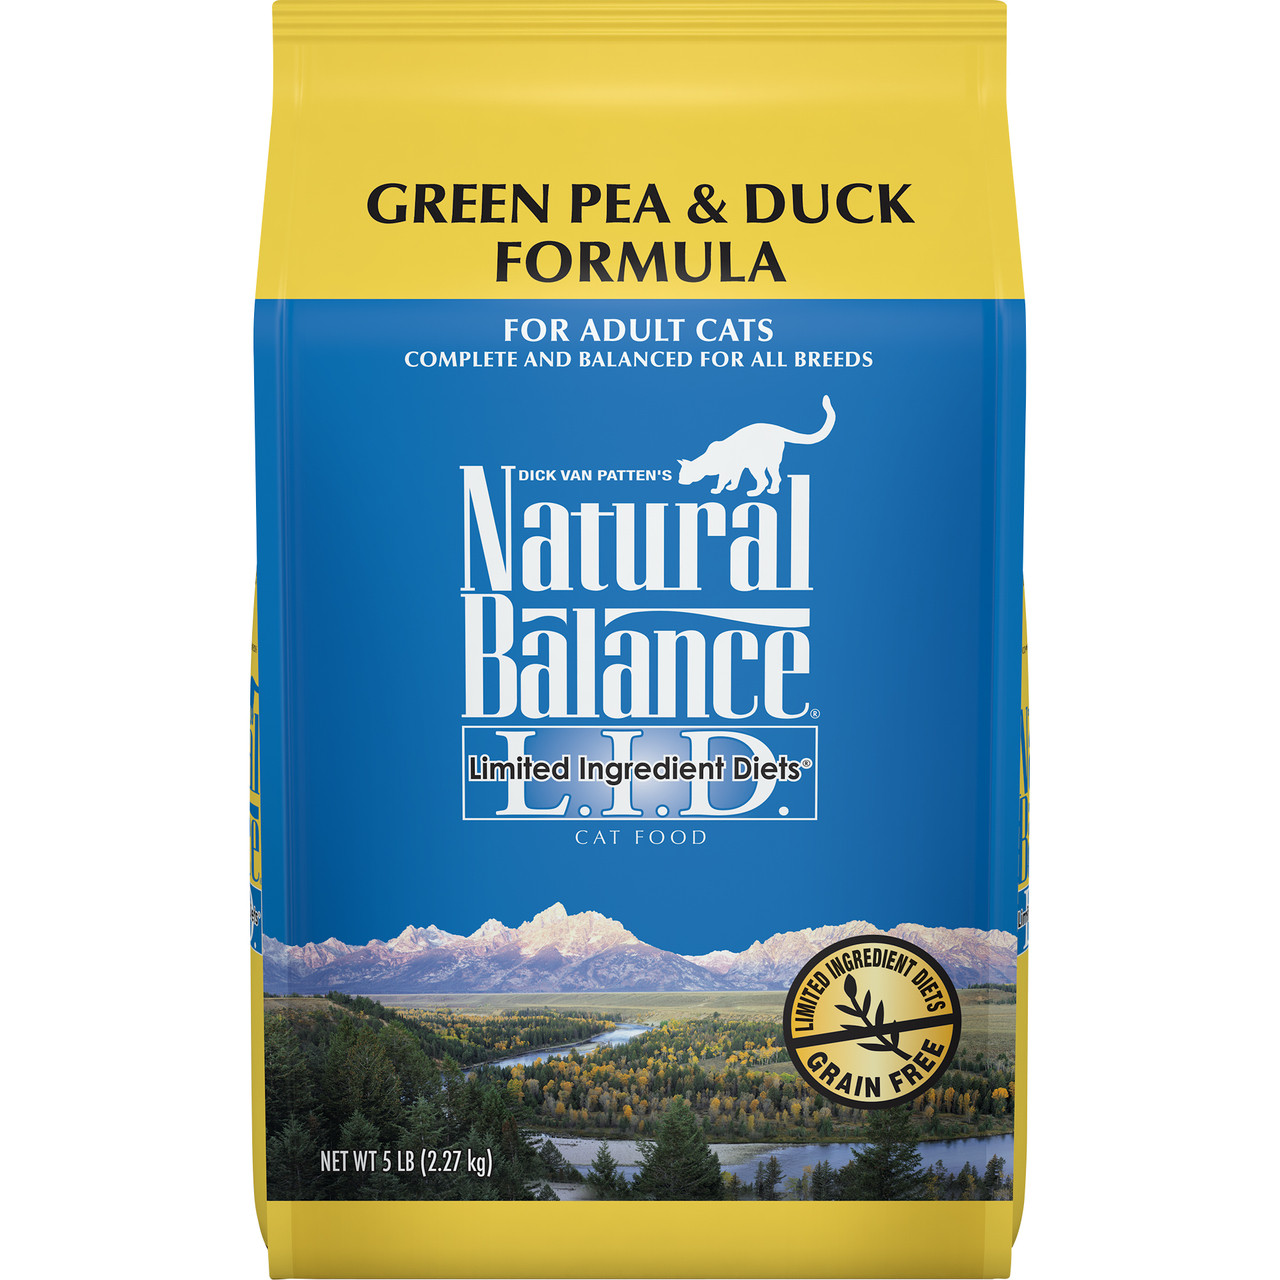 click here to shop Natural Balance Limited Ingredient Diets Green Pea & Duck Formula Dry Cat Food